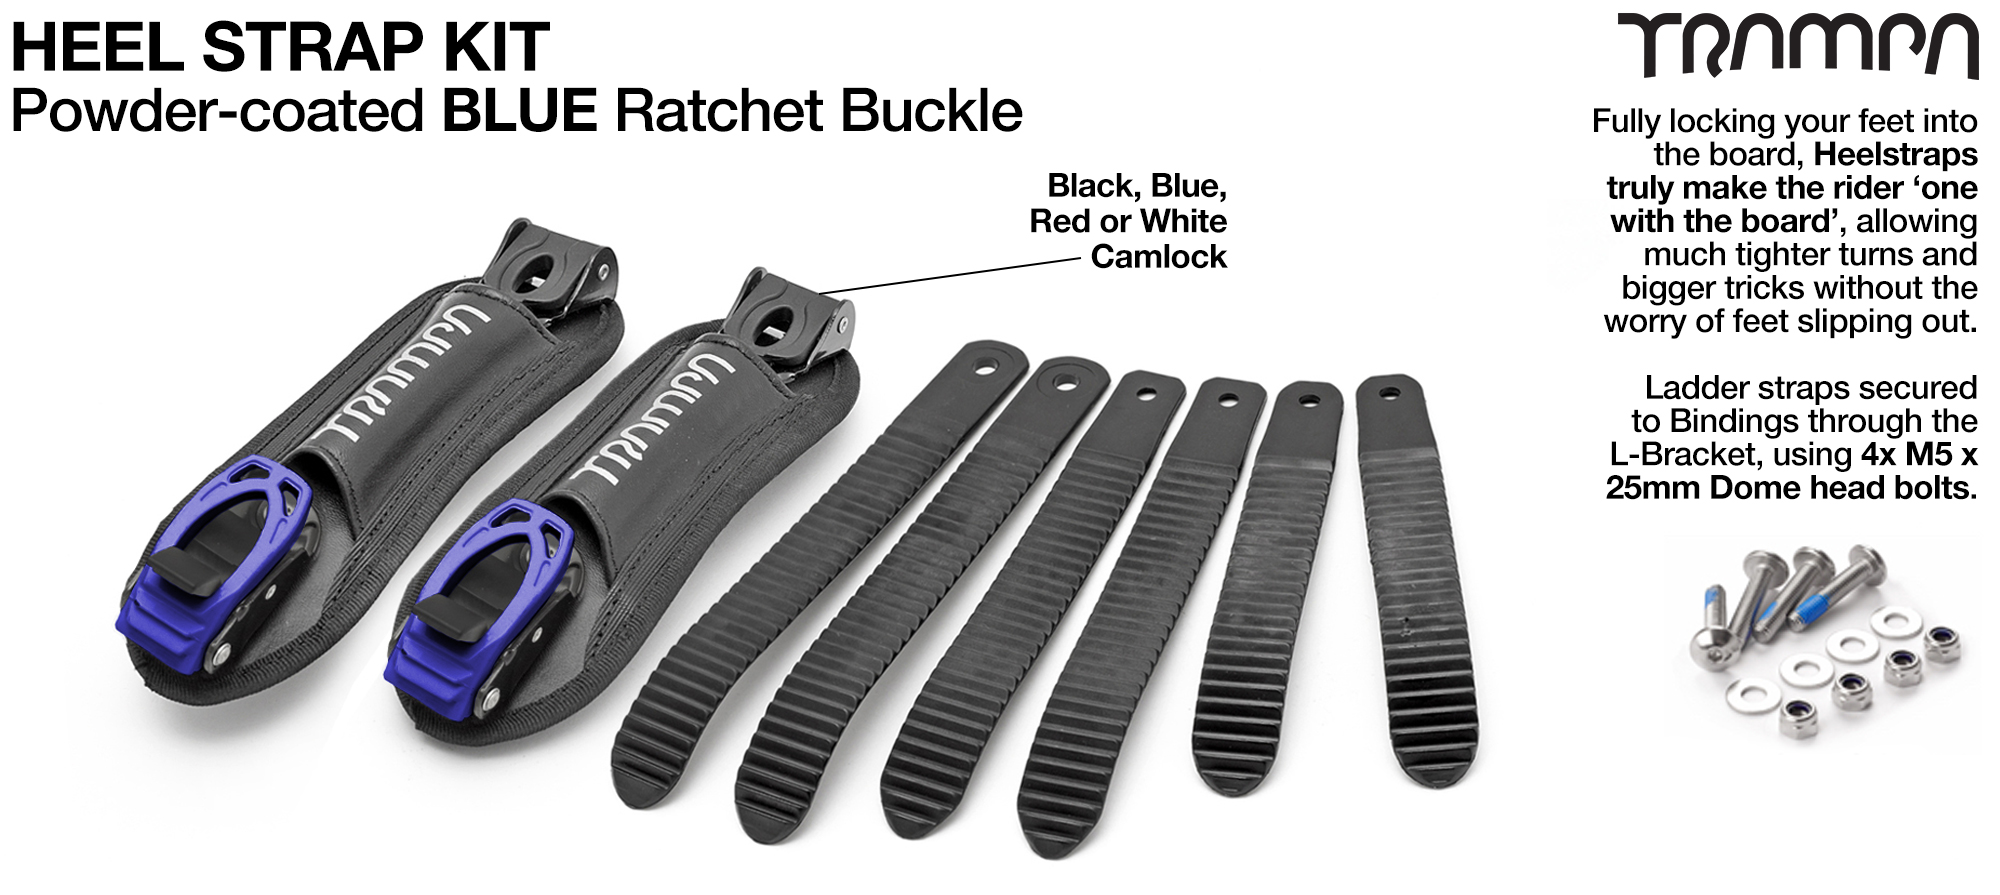 Heel Straps with BLUE Ratchets